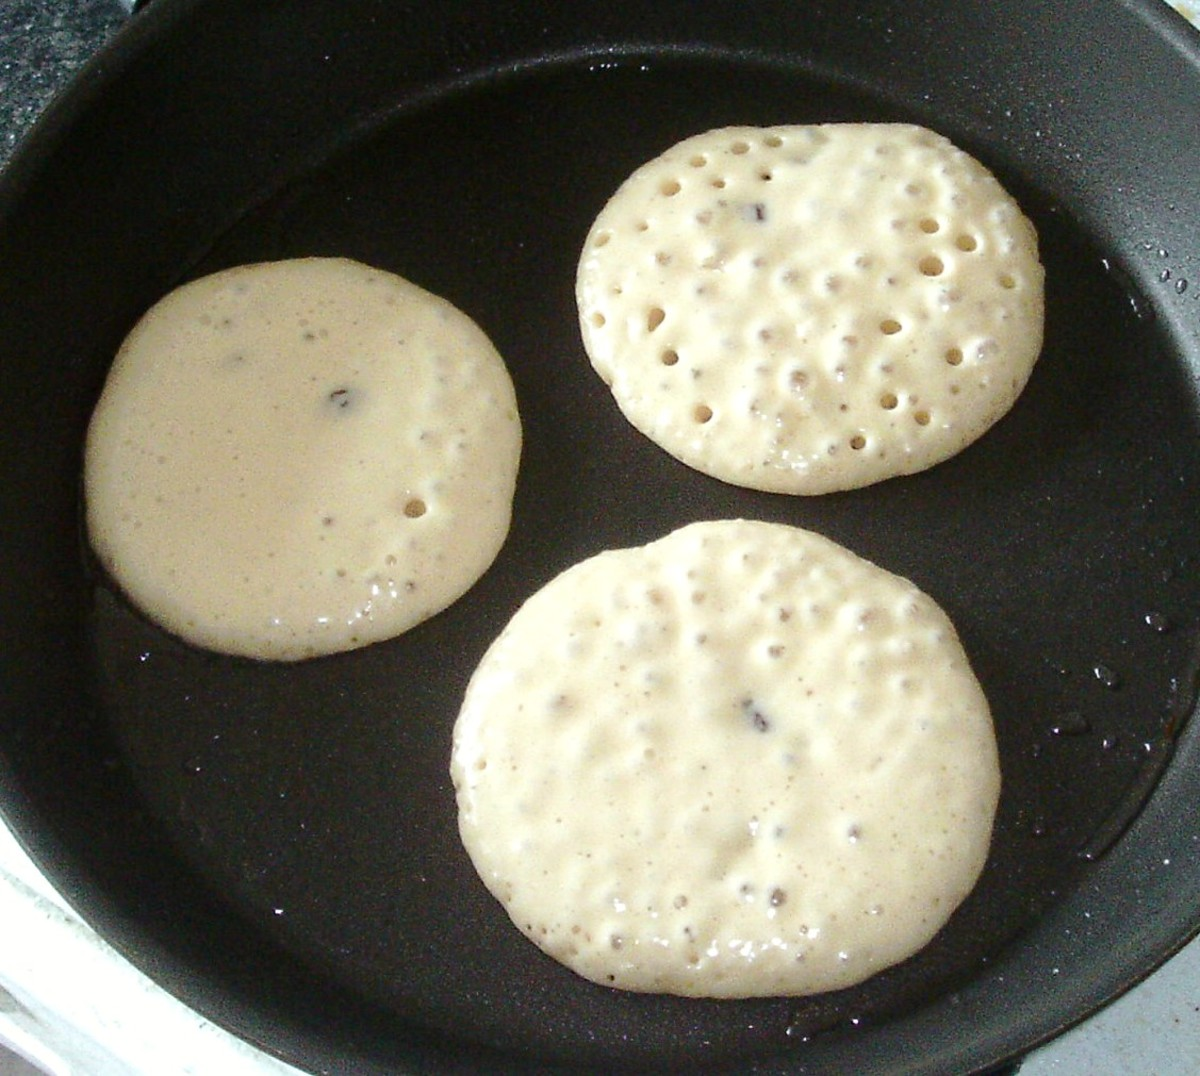 Pancake batter is starting to bubble